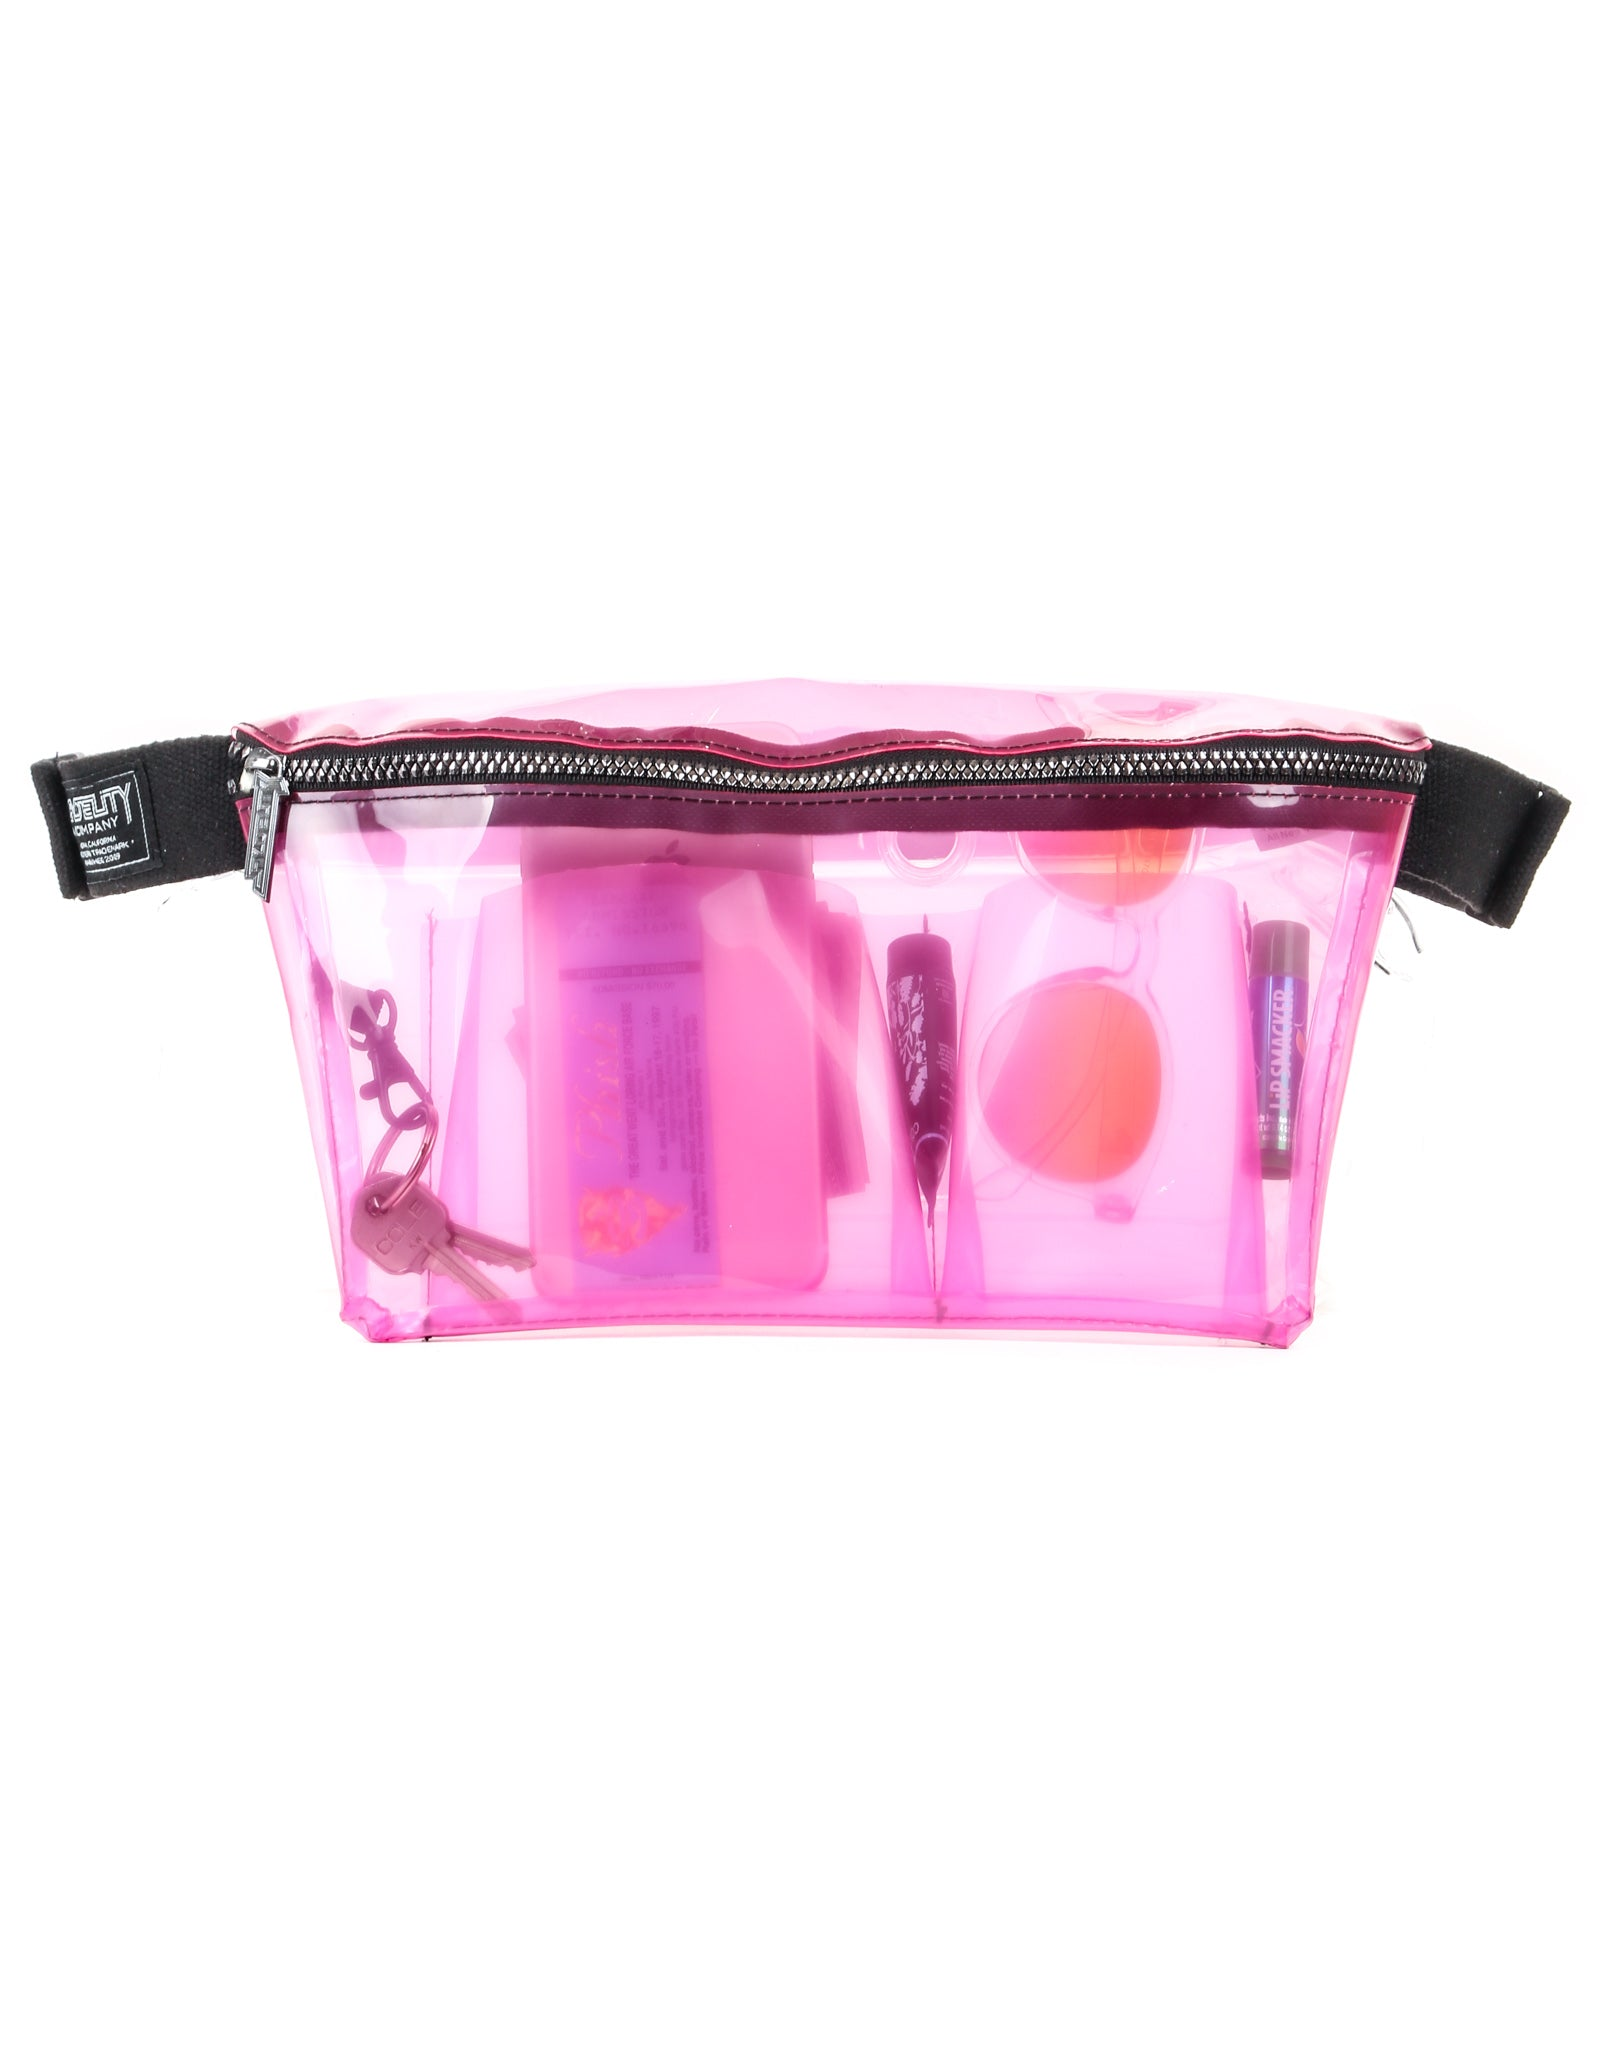 81503: FYDELITY- XL Ultra-Slim Fanny Pack: CRYSTAL Pink